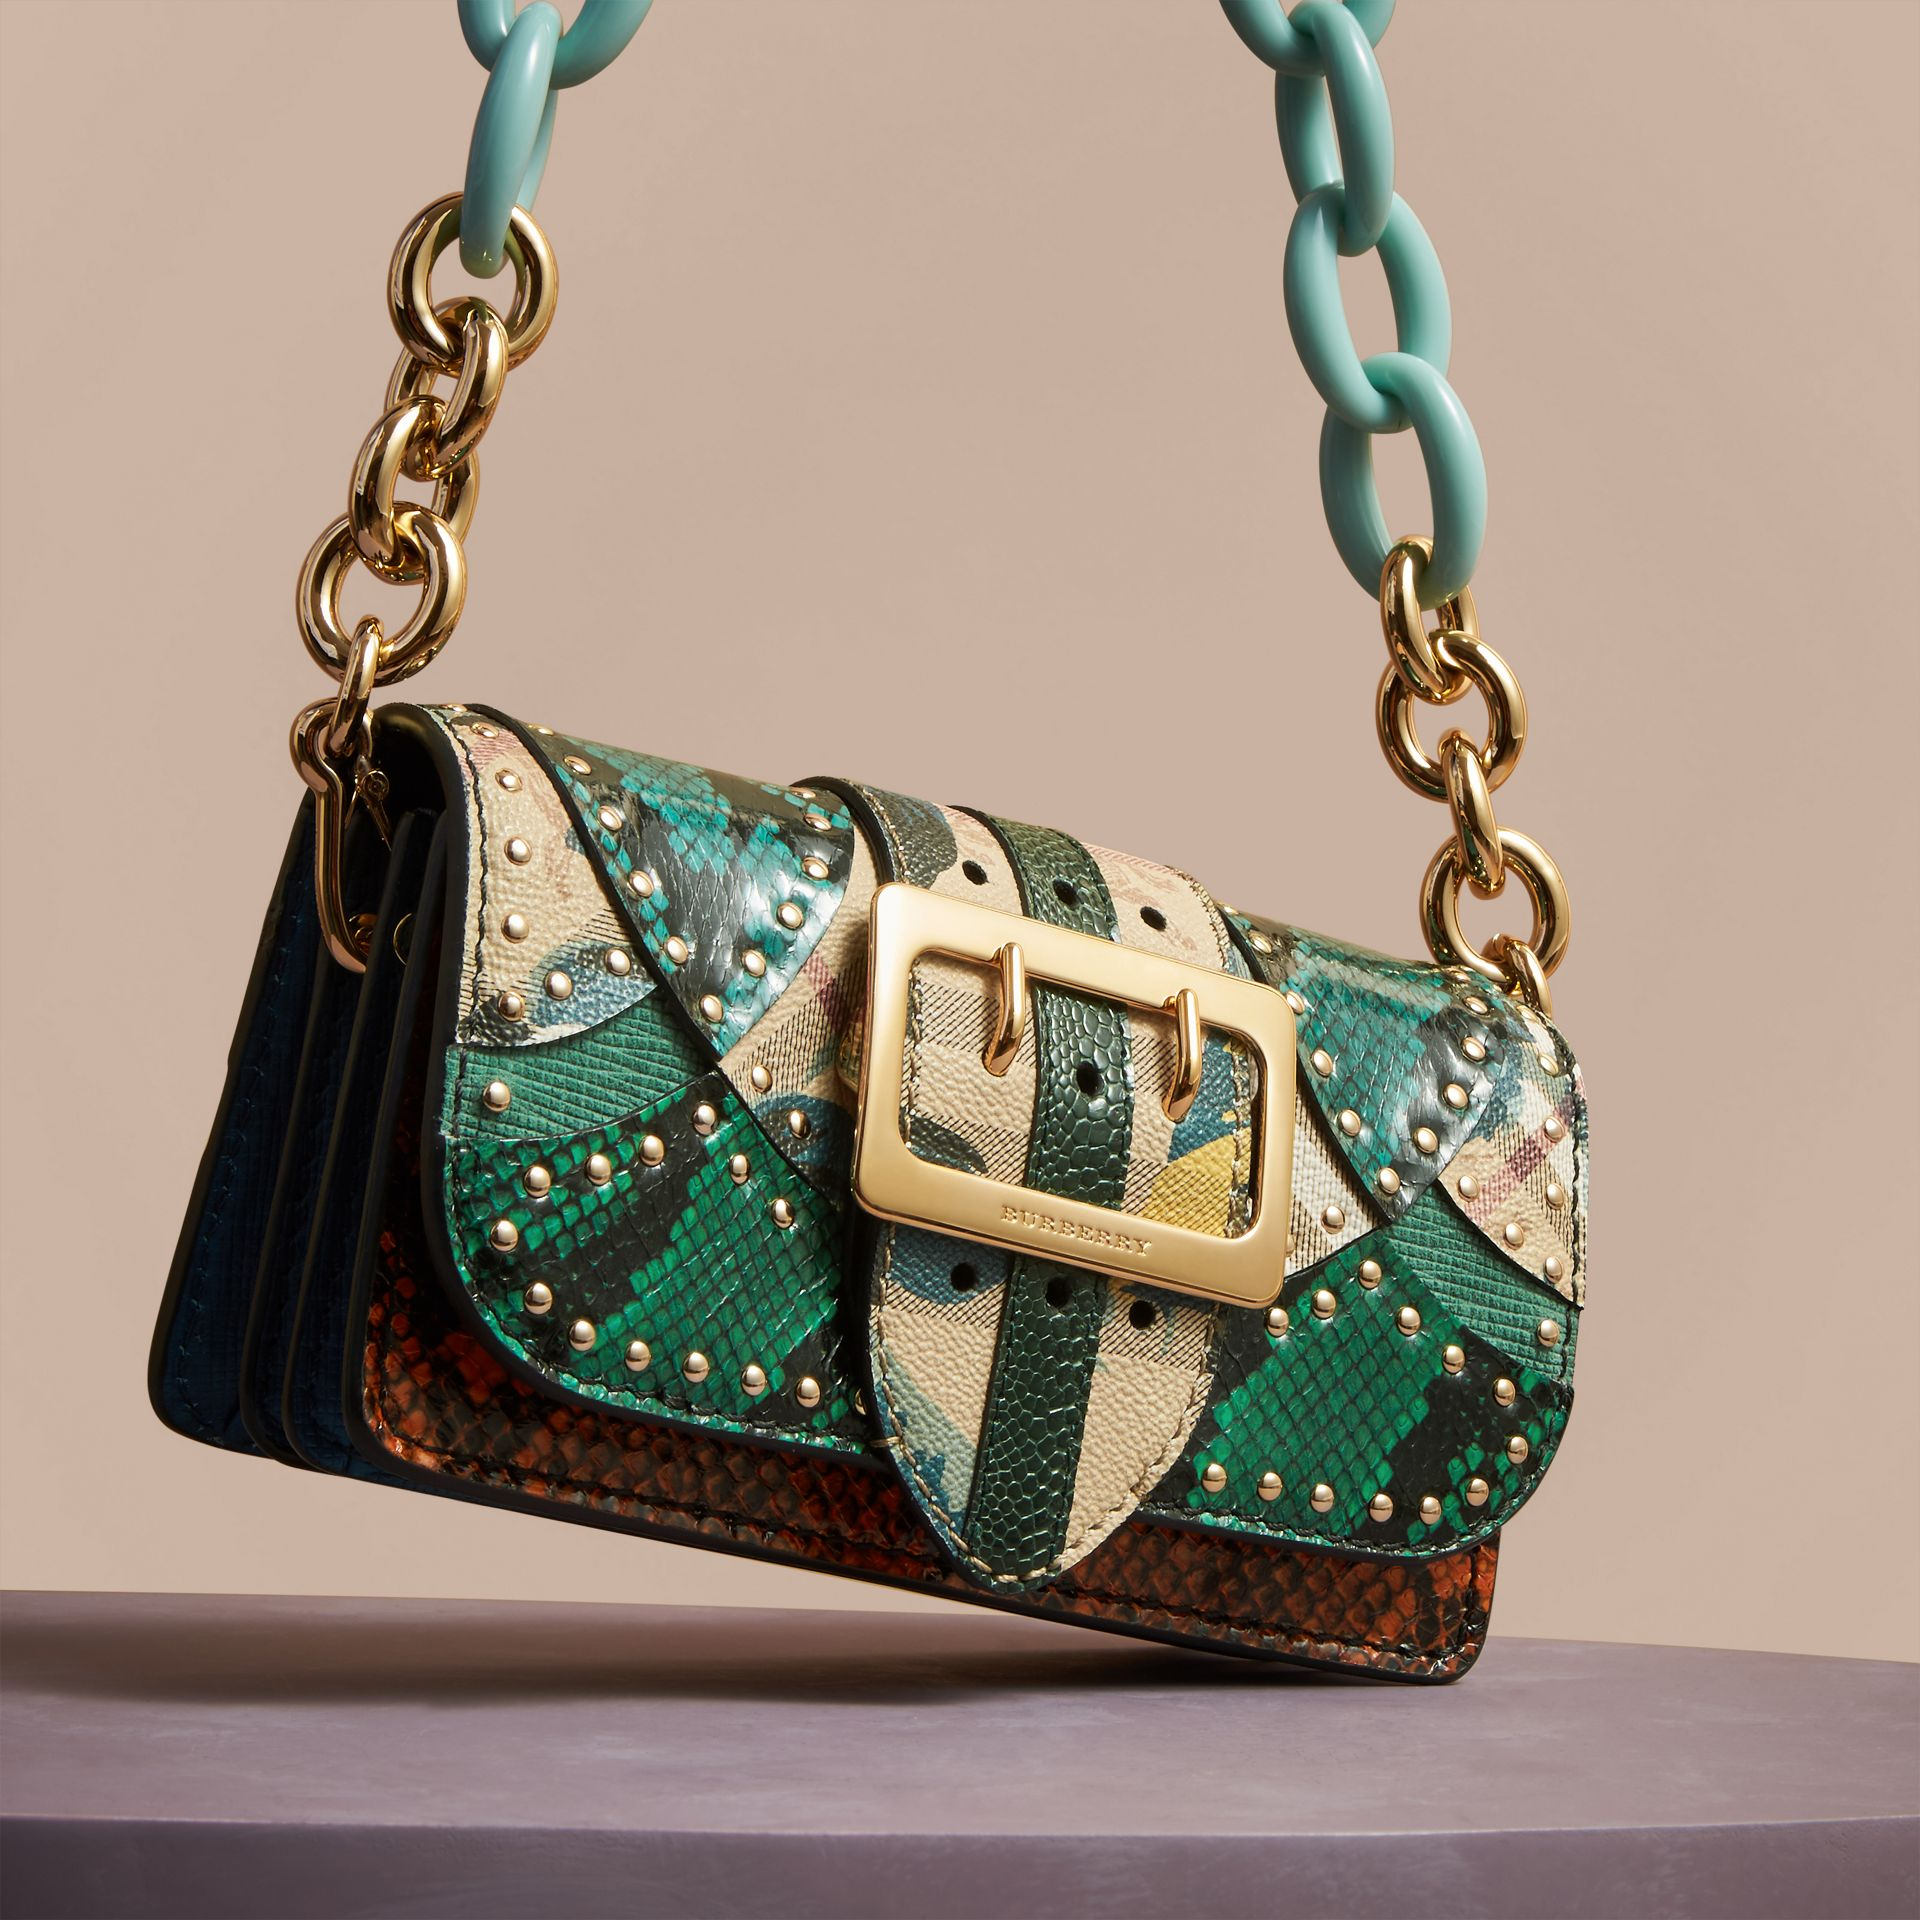 Turquoise The Small Buckle Bag in Riveted Snakeskin and Floral Print - gallery image 6